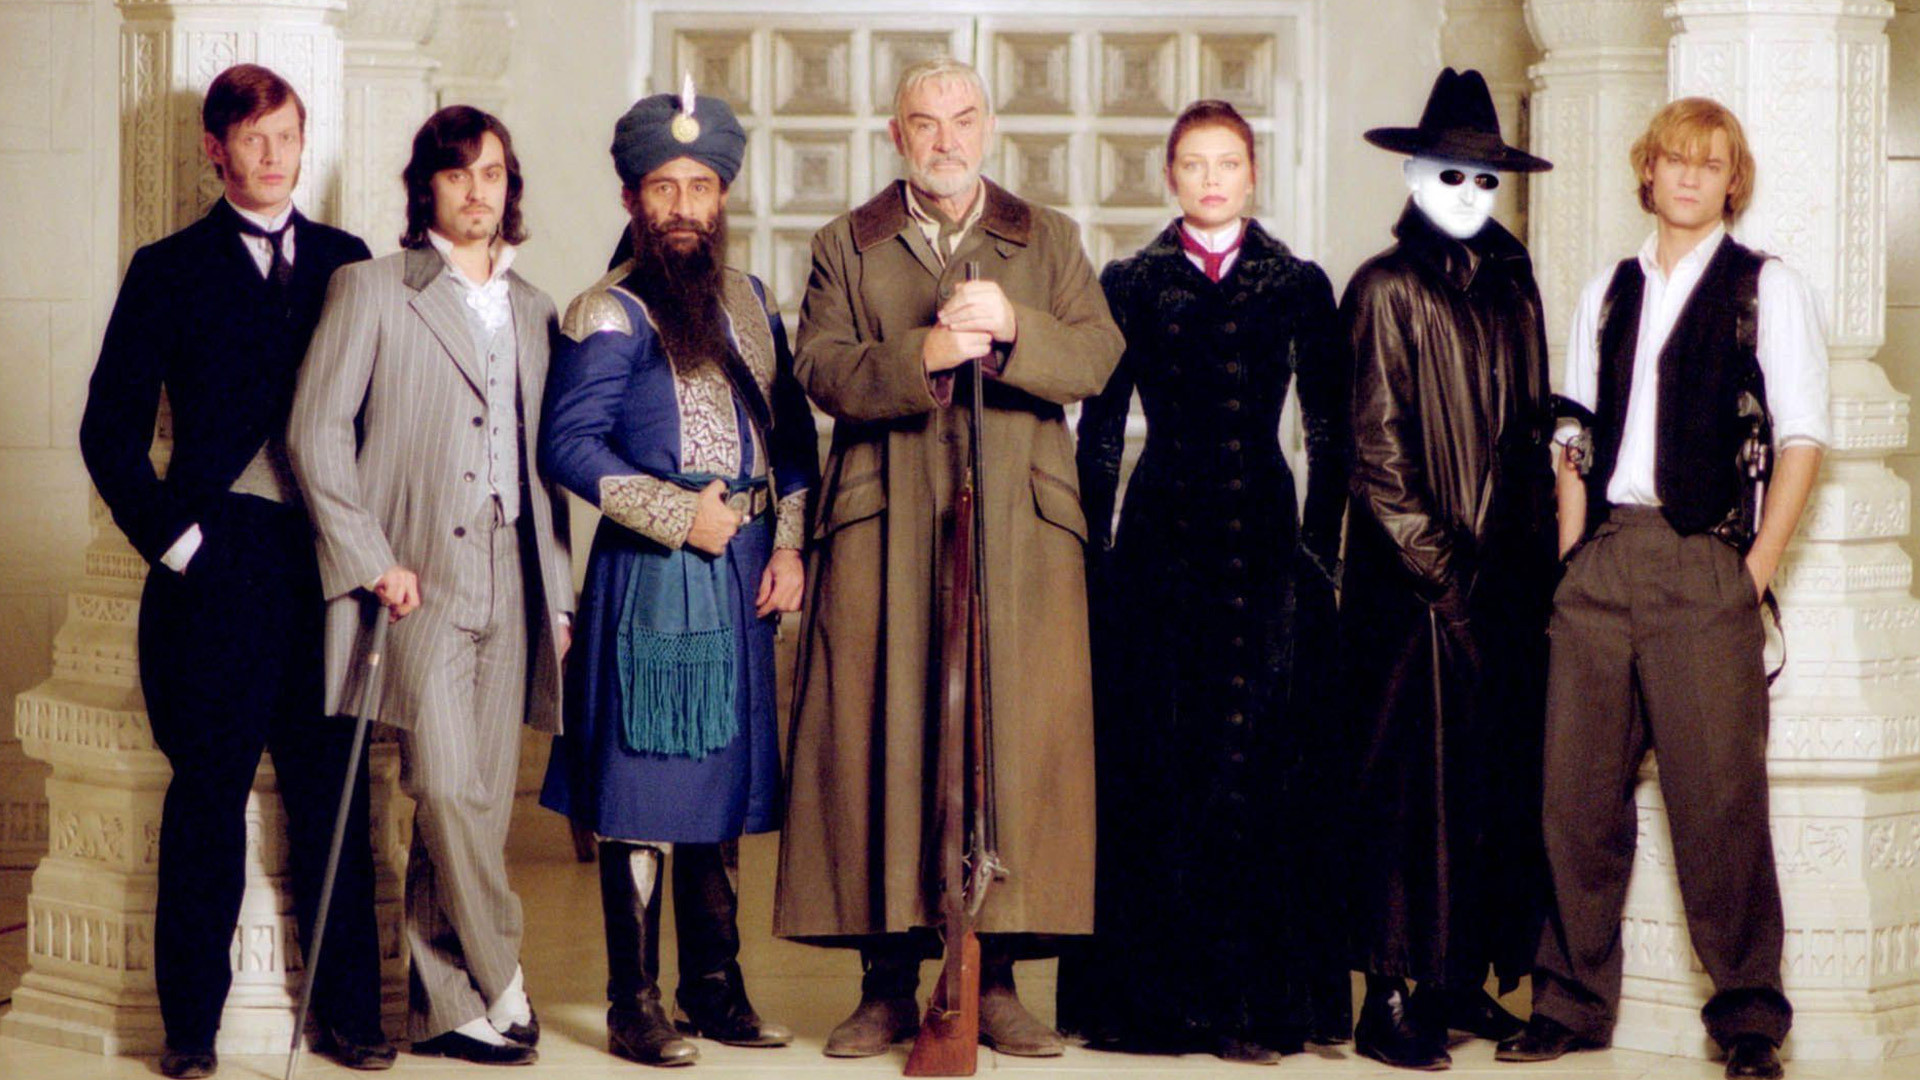 Dr Jekyll (Jason Flemyng), Dorian Gray (Stuart Townsend), Captain Nemo (Naseeruddin Shah), Allan Quatermain (Sean Connery), Mina Harker (Peta Wilson), The Invisible Man (Tony Curran) and Tom Sawyer (Shane West) in The League of Extraordinary Gentlemen (2003)